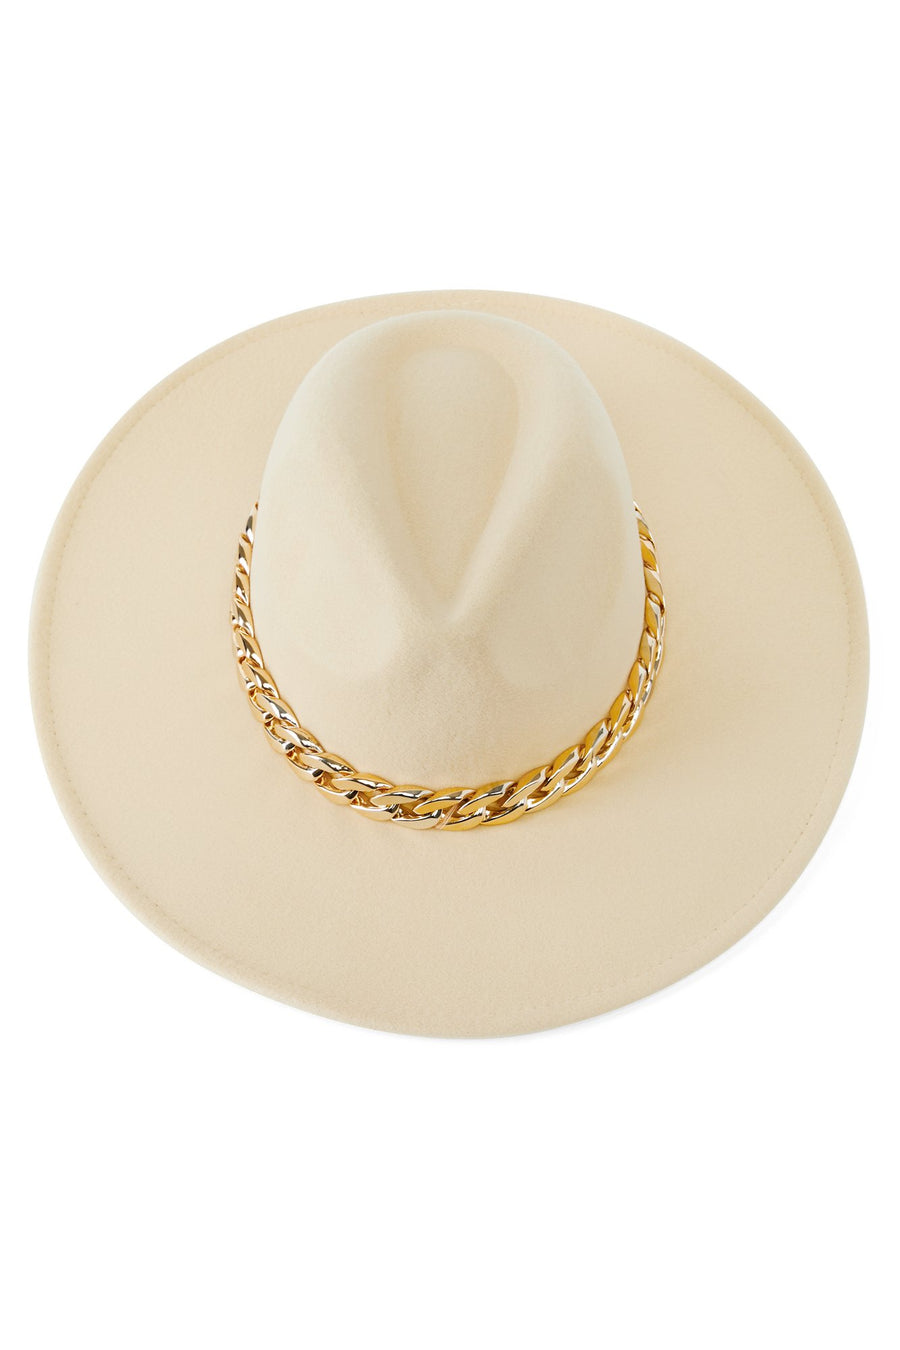 Chain Of Events Hat - Ivory